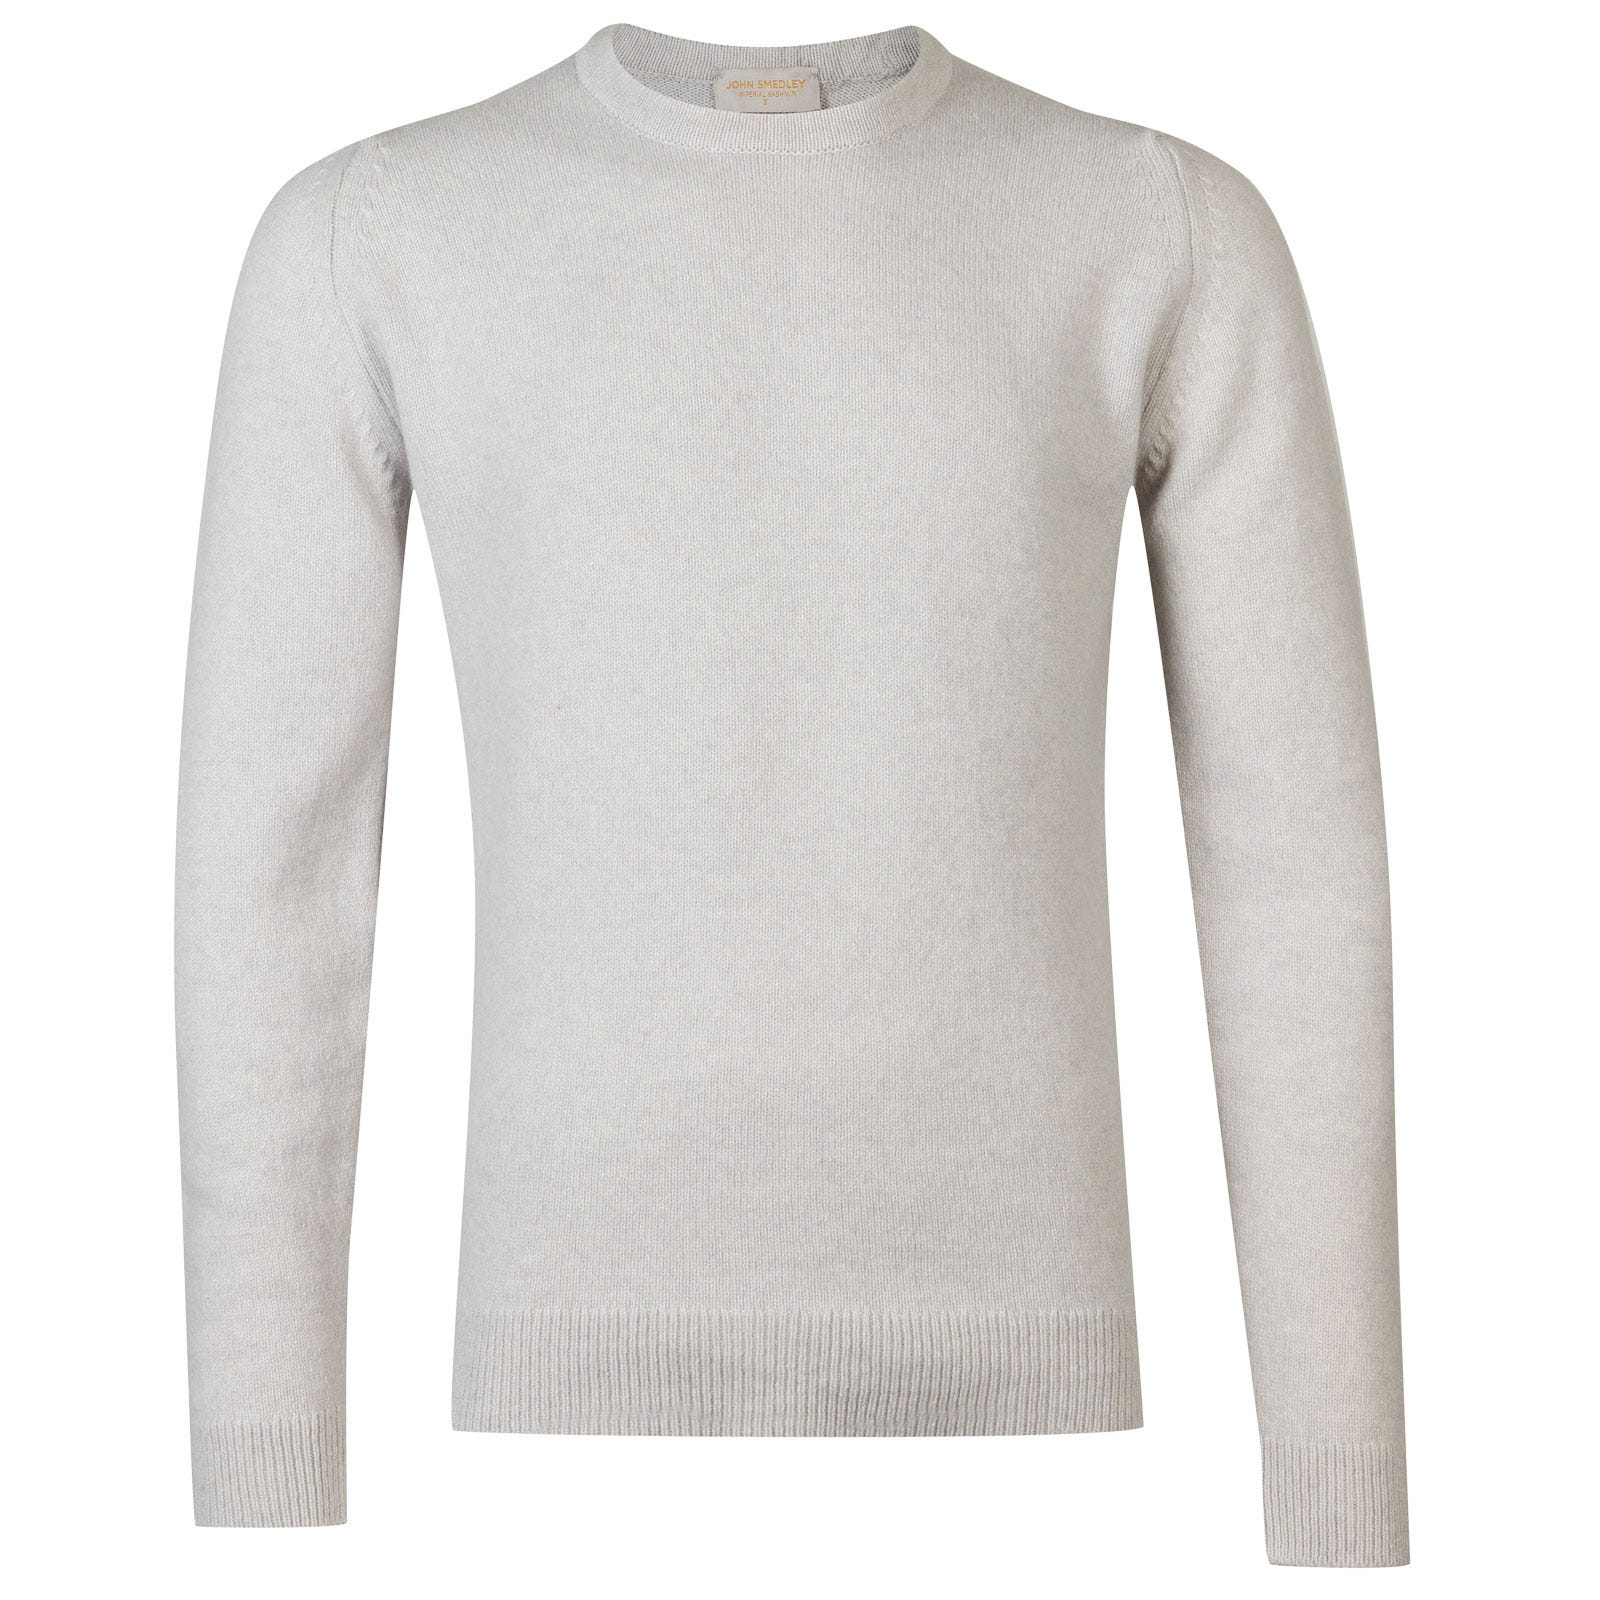 John Smedley Crowford Wool and Cashmere Pullover in Soft Grey-S